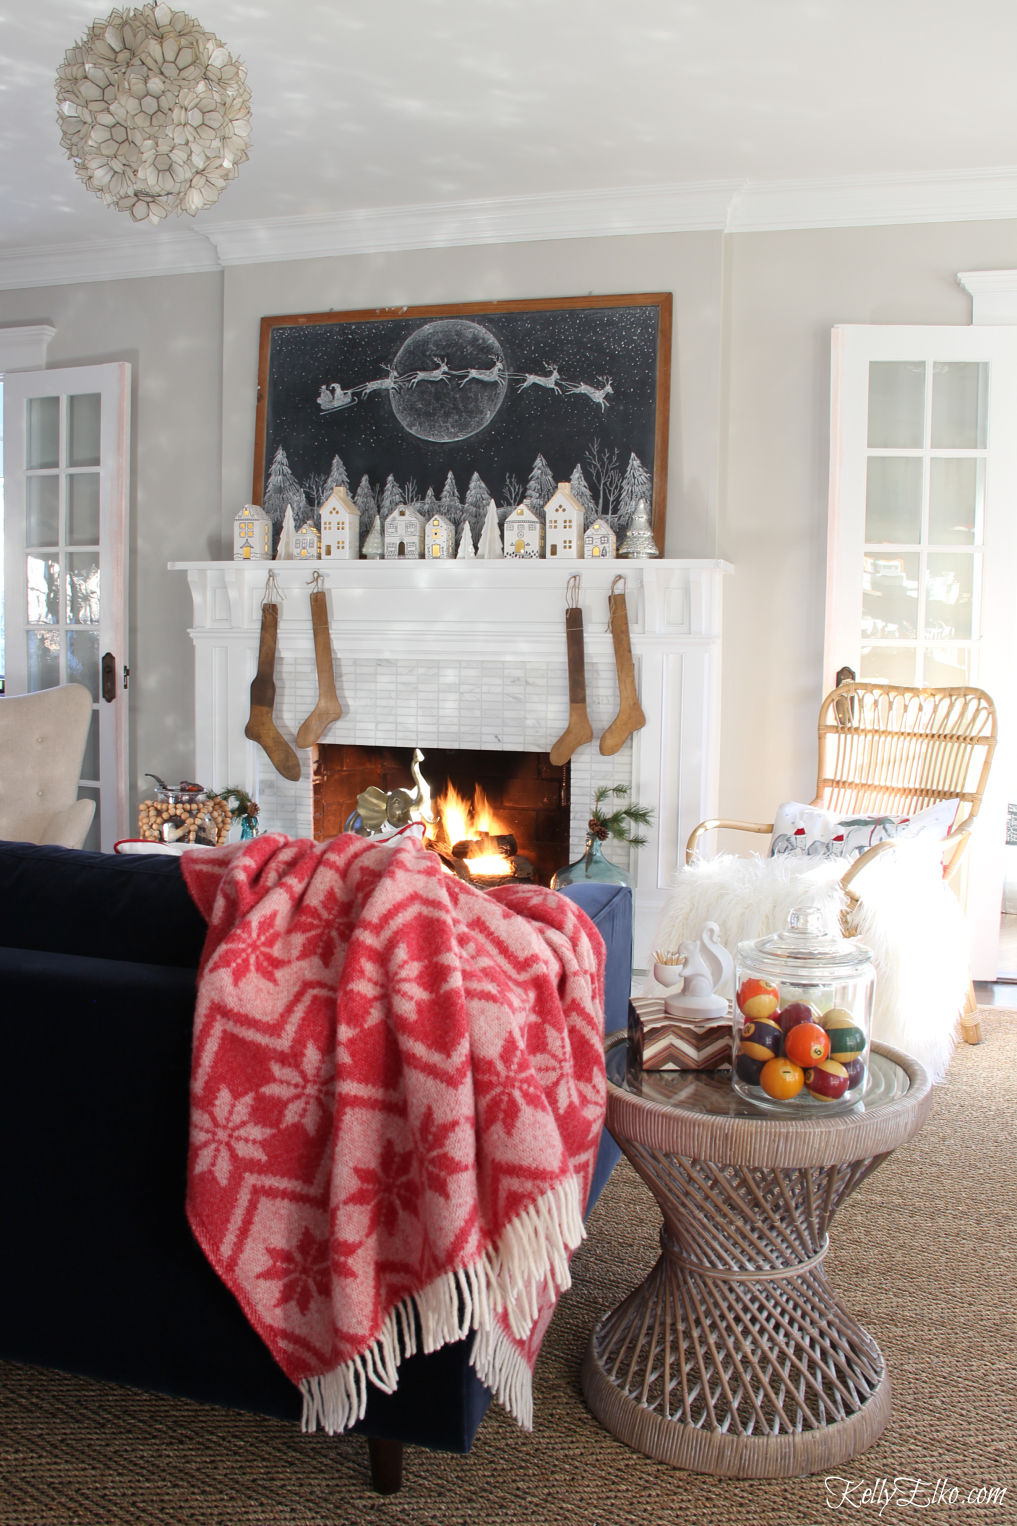 Beautiful Christmas home tour - love the giant Christmas chalkboard art and little houses on the mantel kellyelko.com #christmas #christmasdecor #christmasdecorating #christmasmantel #christmaslivingroom #farmhousechristmas #vintagechristmas #cozychristmas #livingroomdecor